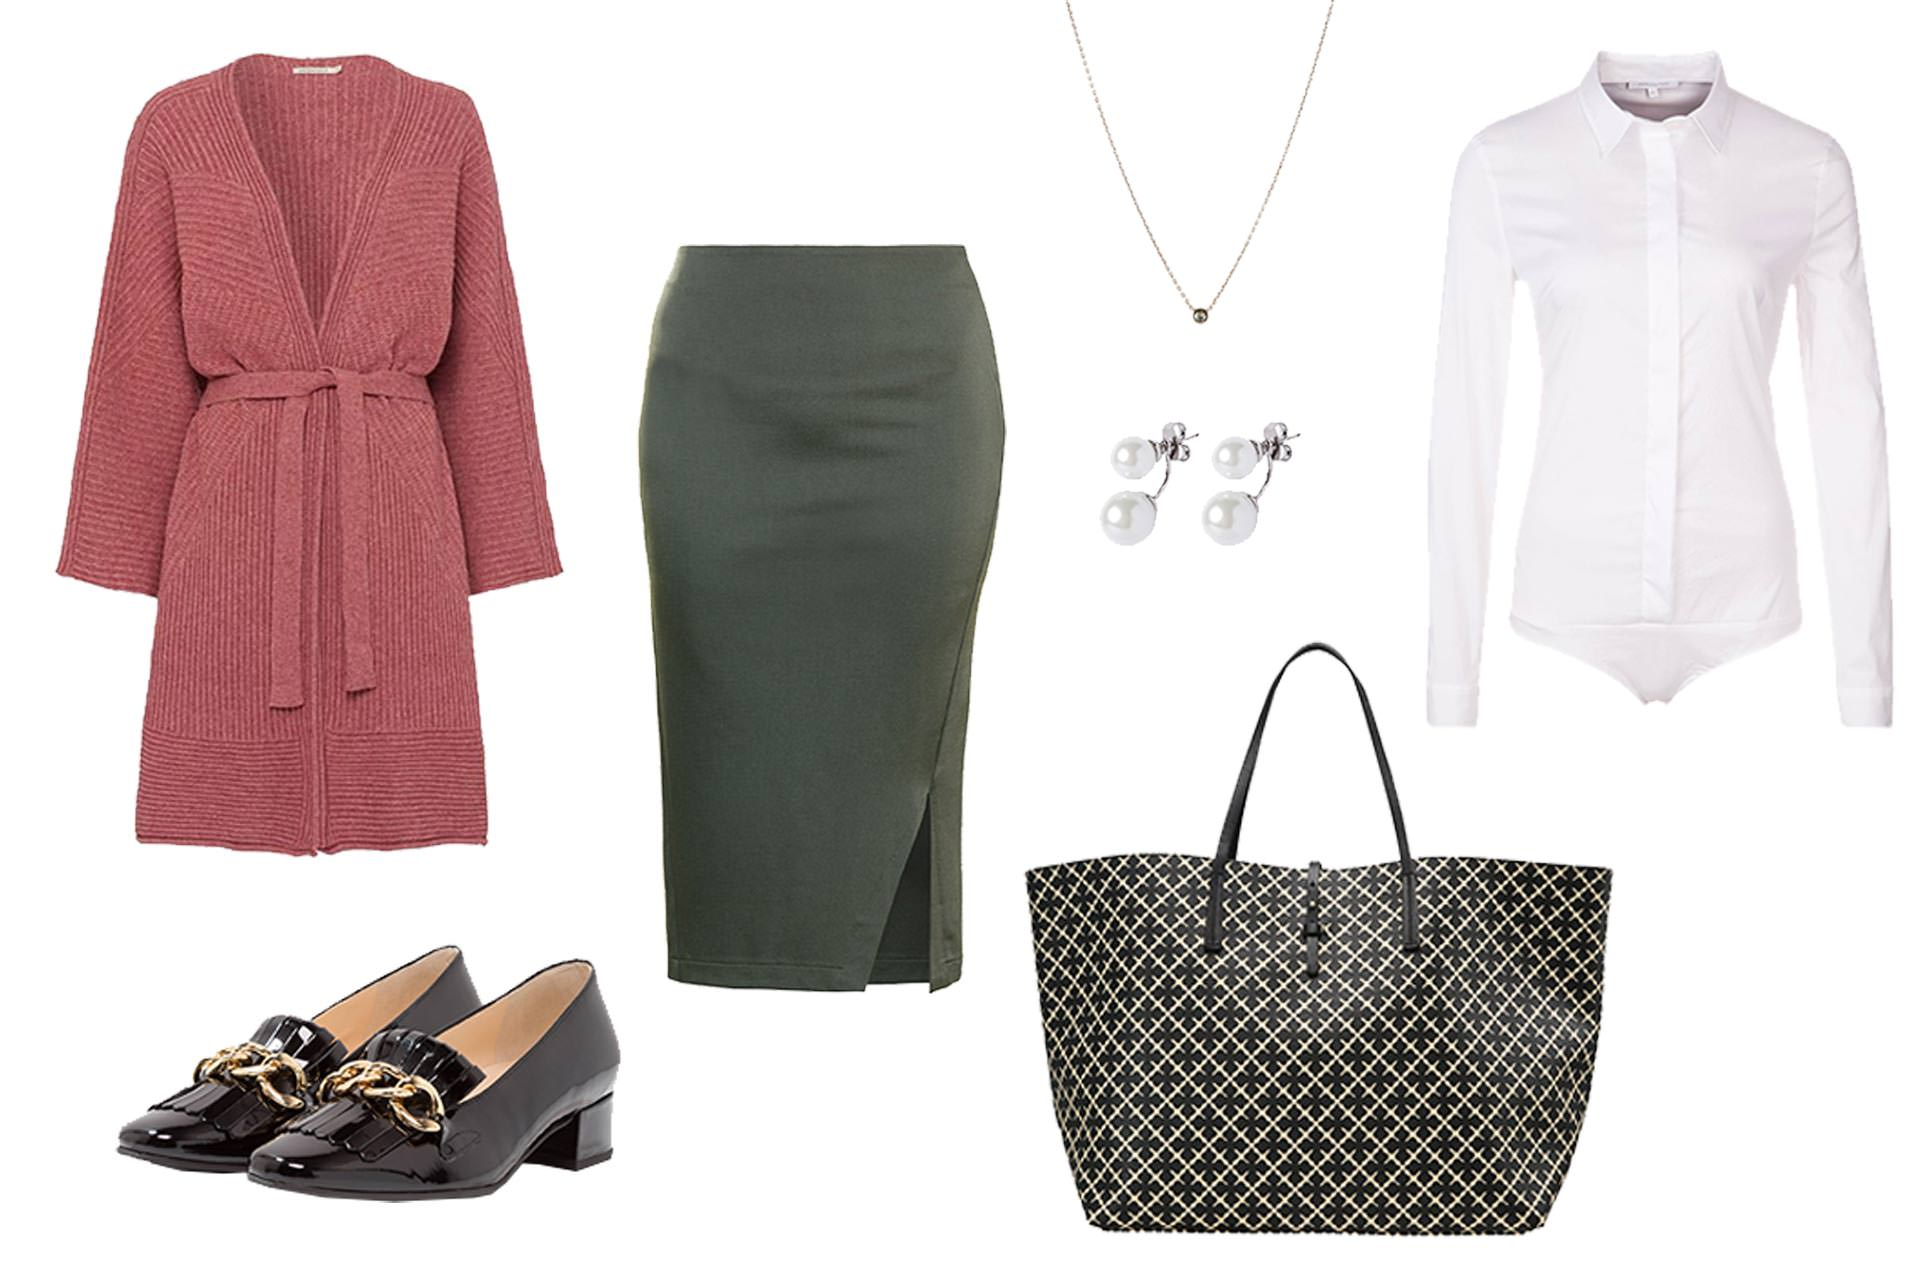 Business Capsule Wardrobe Guide, Was ziehe ich morgen im Büro an?, Office Outfits, Büro Looks, Karriere Blog, Office Outfits Blog, Business Garderobe, www.whoismocca.com